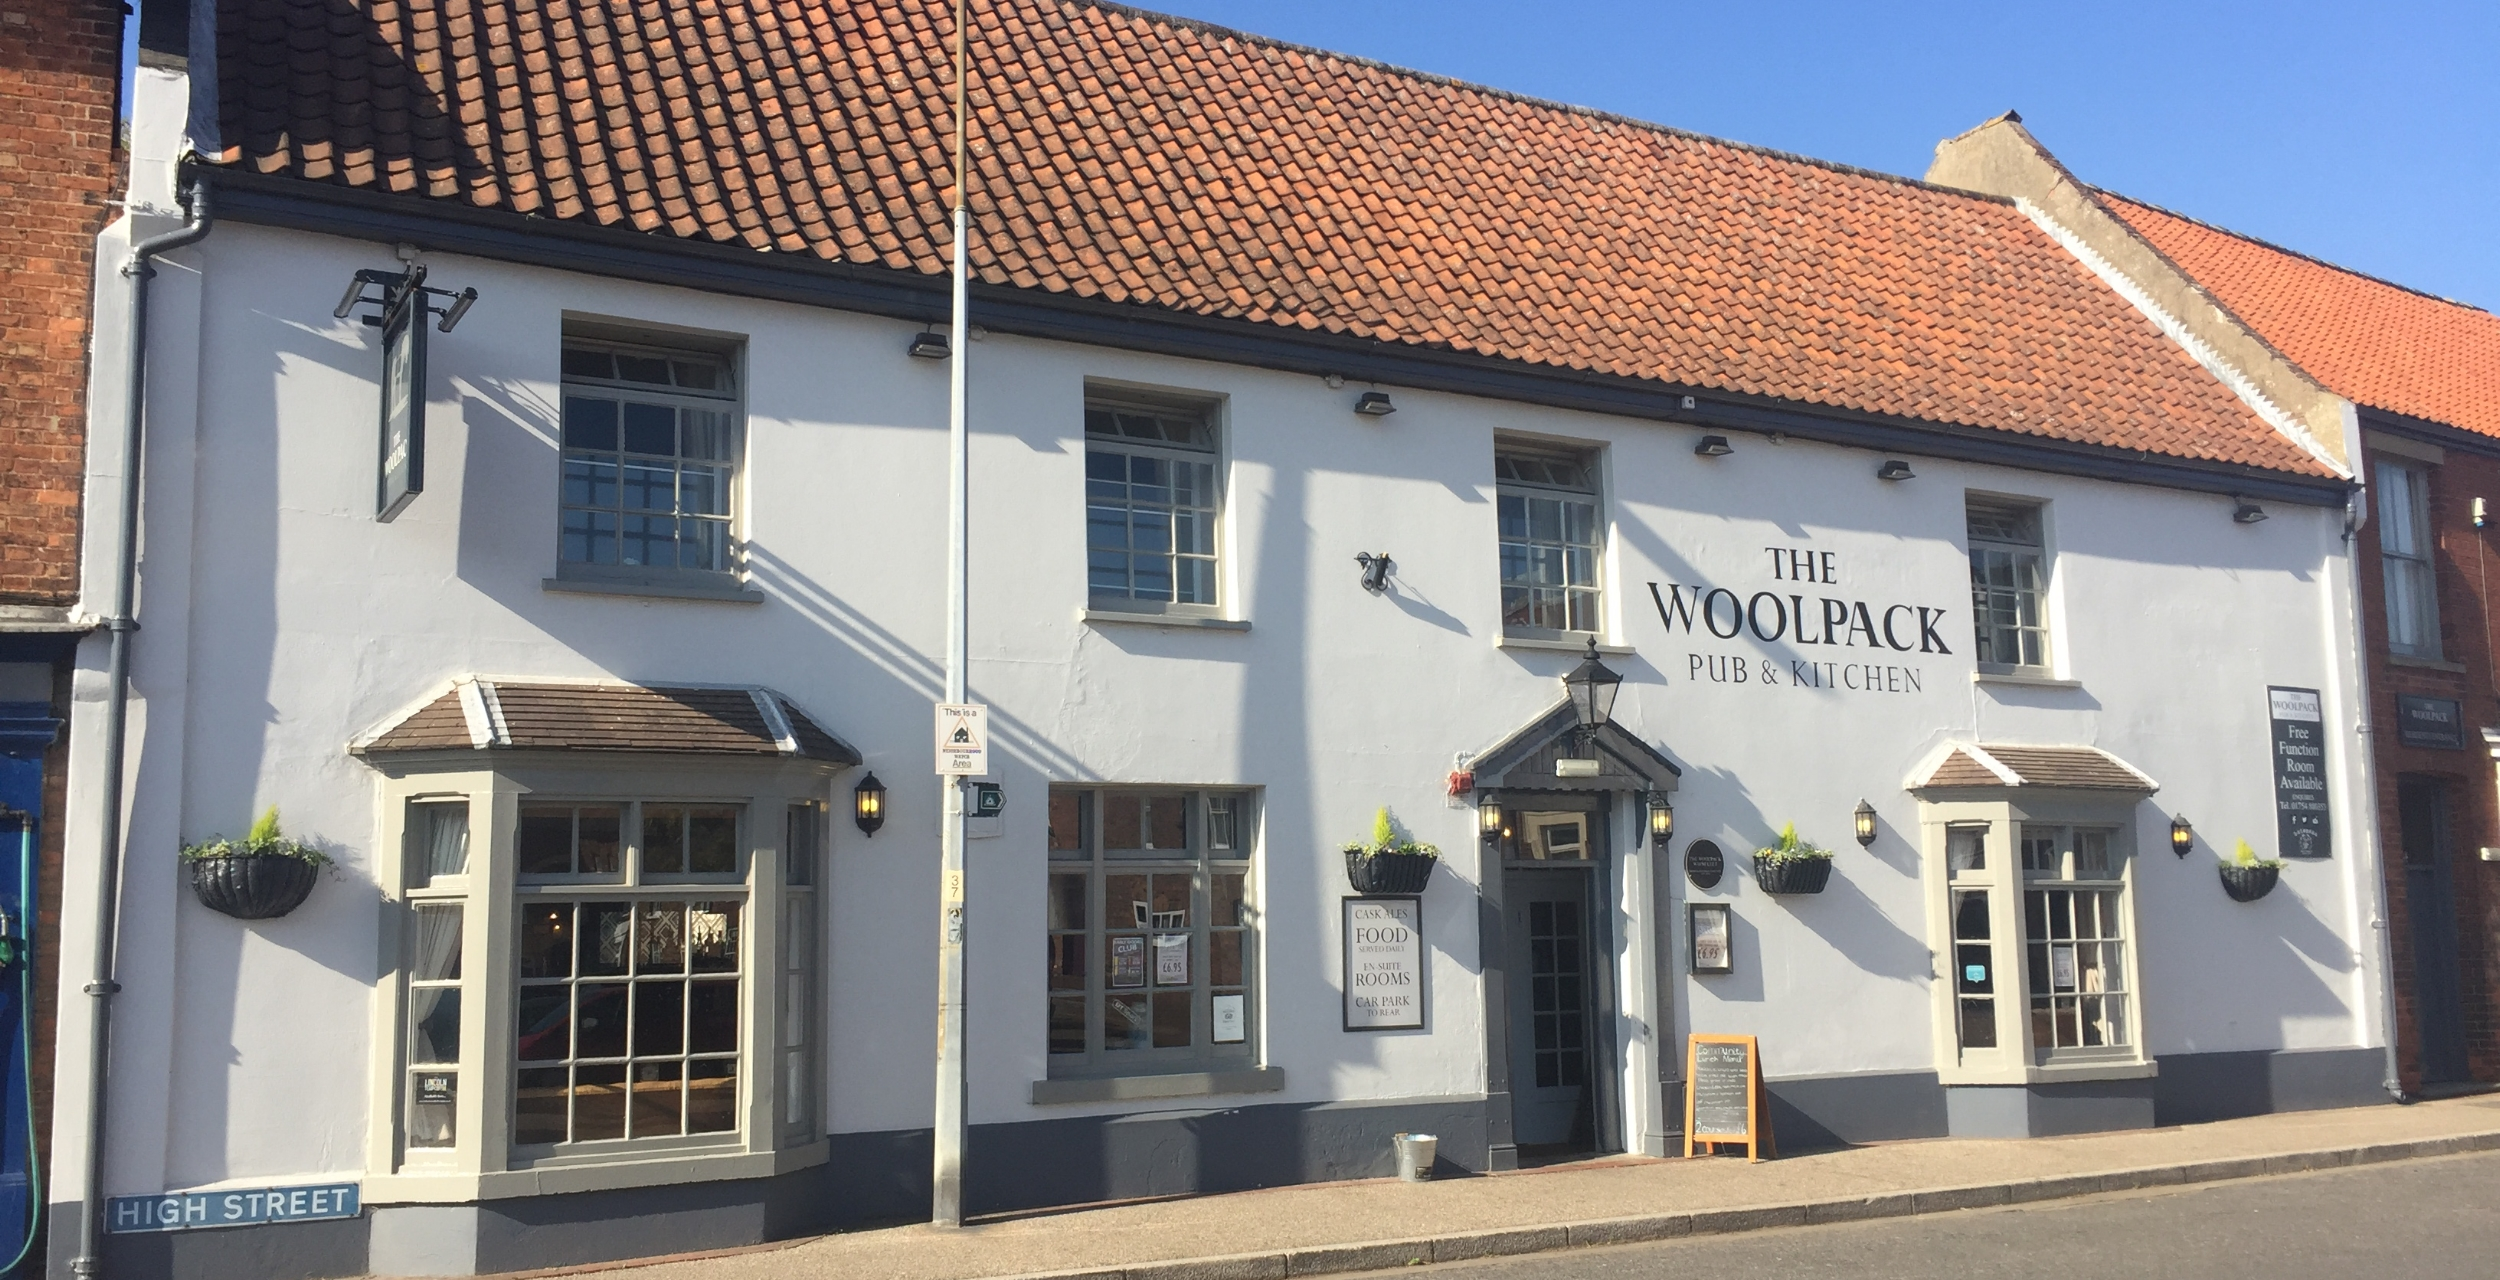 A warm welcome to new Woolpack landlords